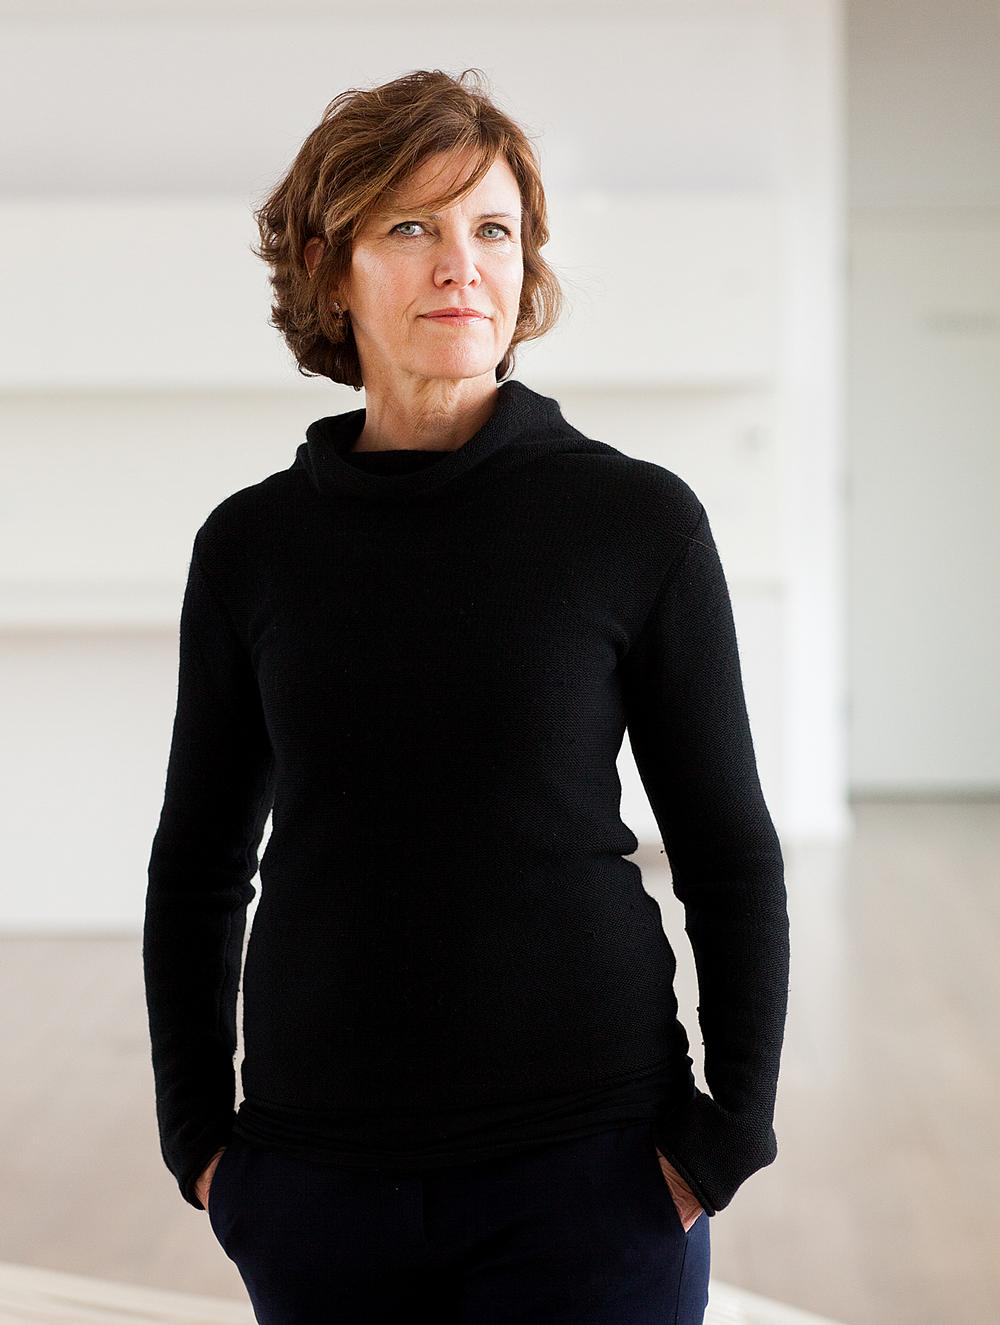 Jeanne Gang writes for a range of publications. She is currently teaching at Harvard Graduate School of Design / Photo: ©Sally Ryan